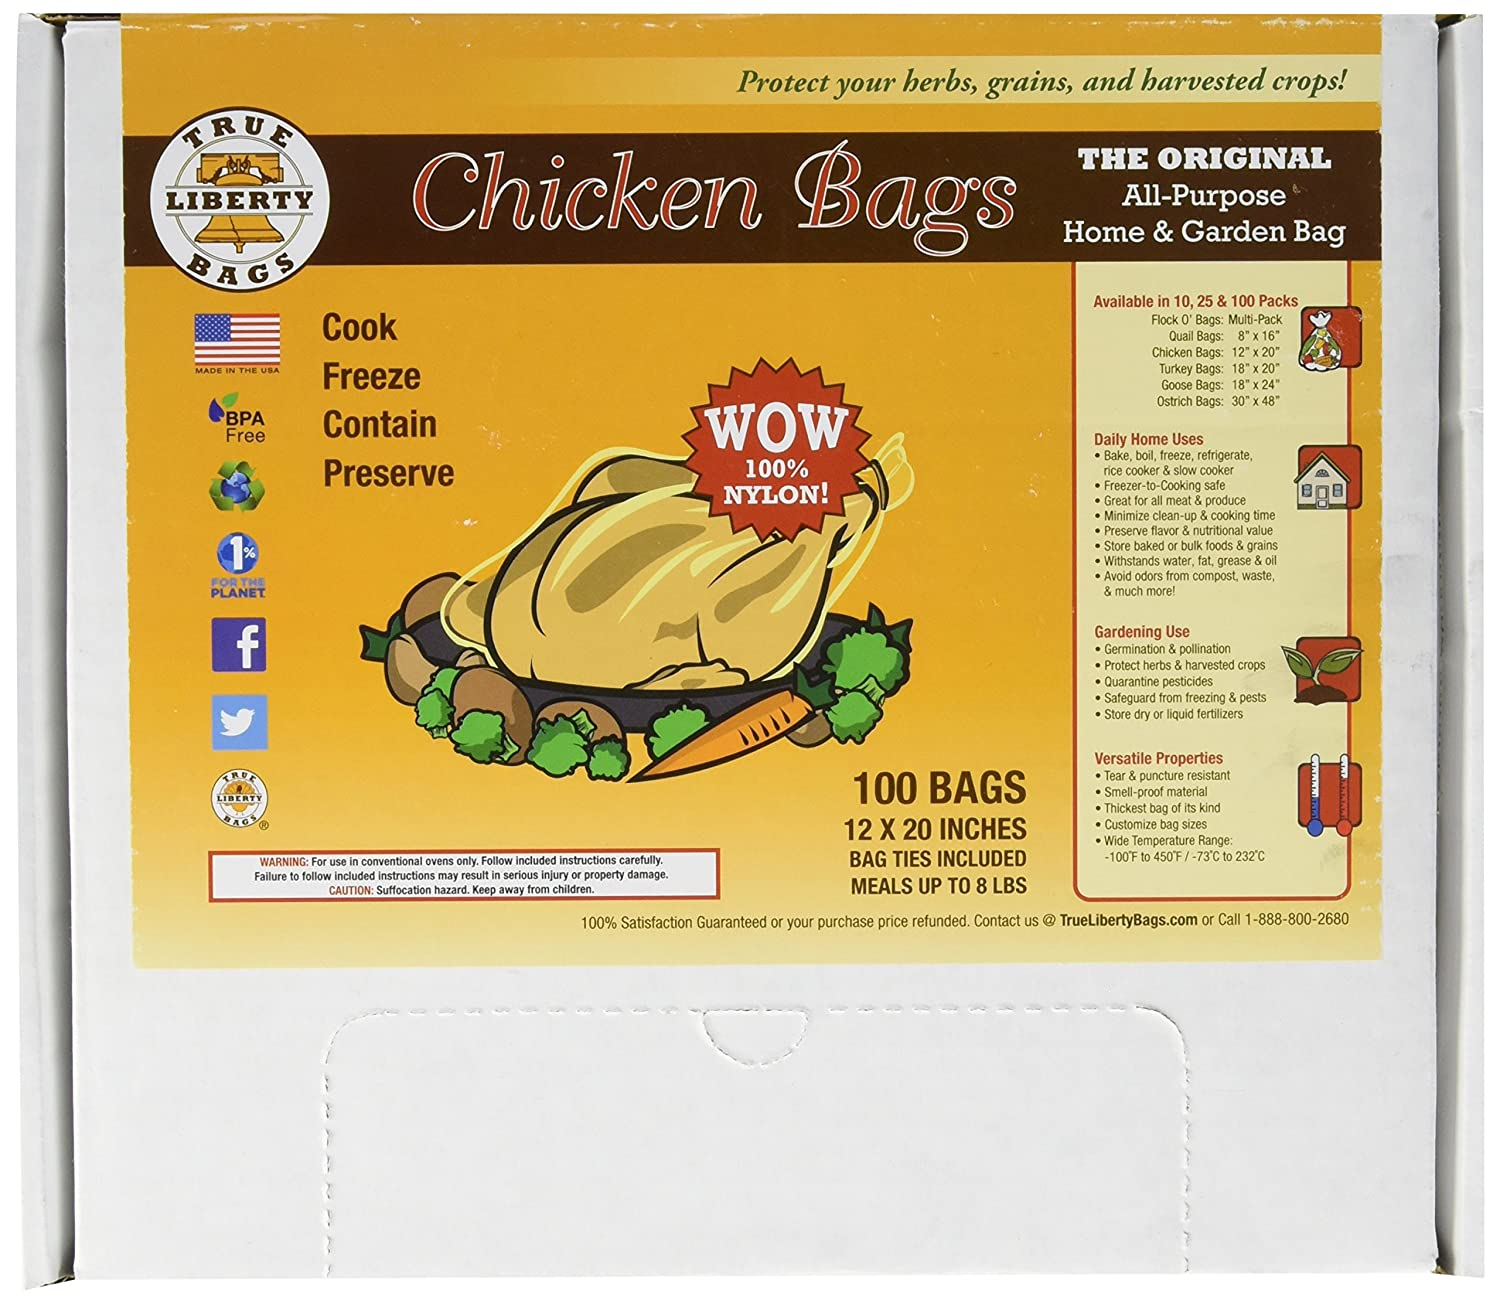 True Liberty Bags Chicken 100 Pack, All Purpose Home and Garden Bags, Clear